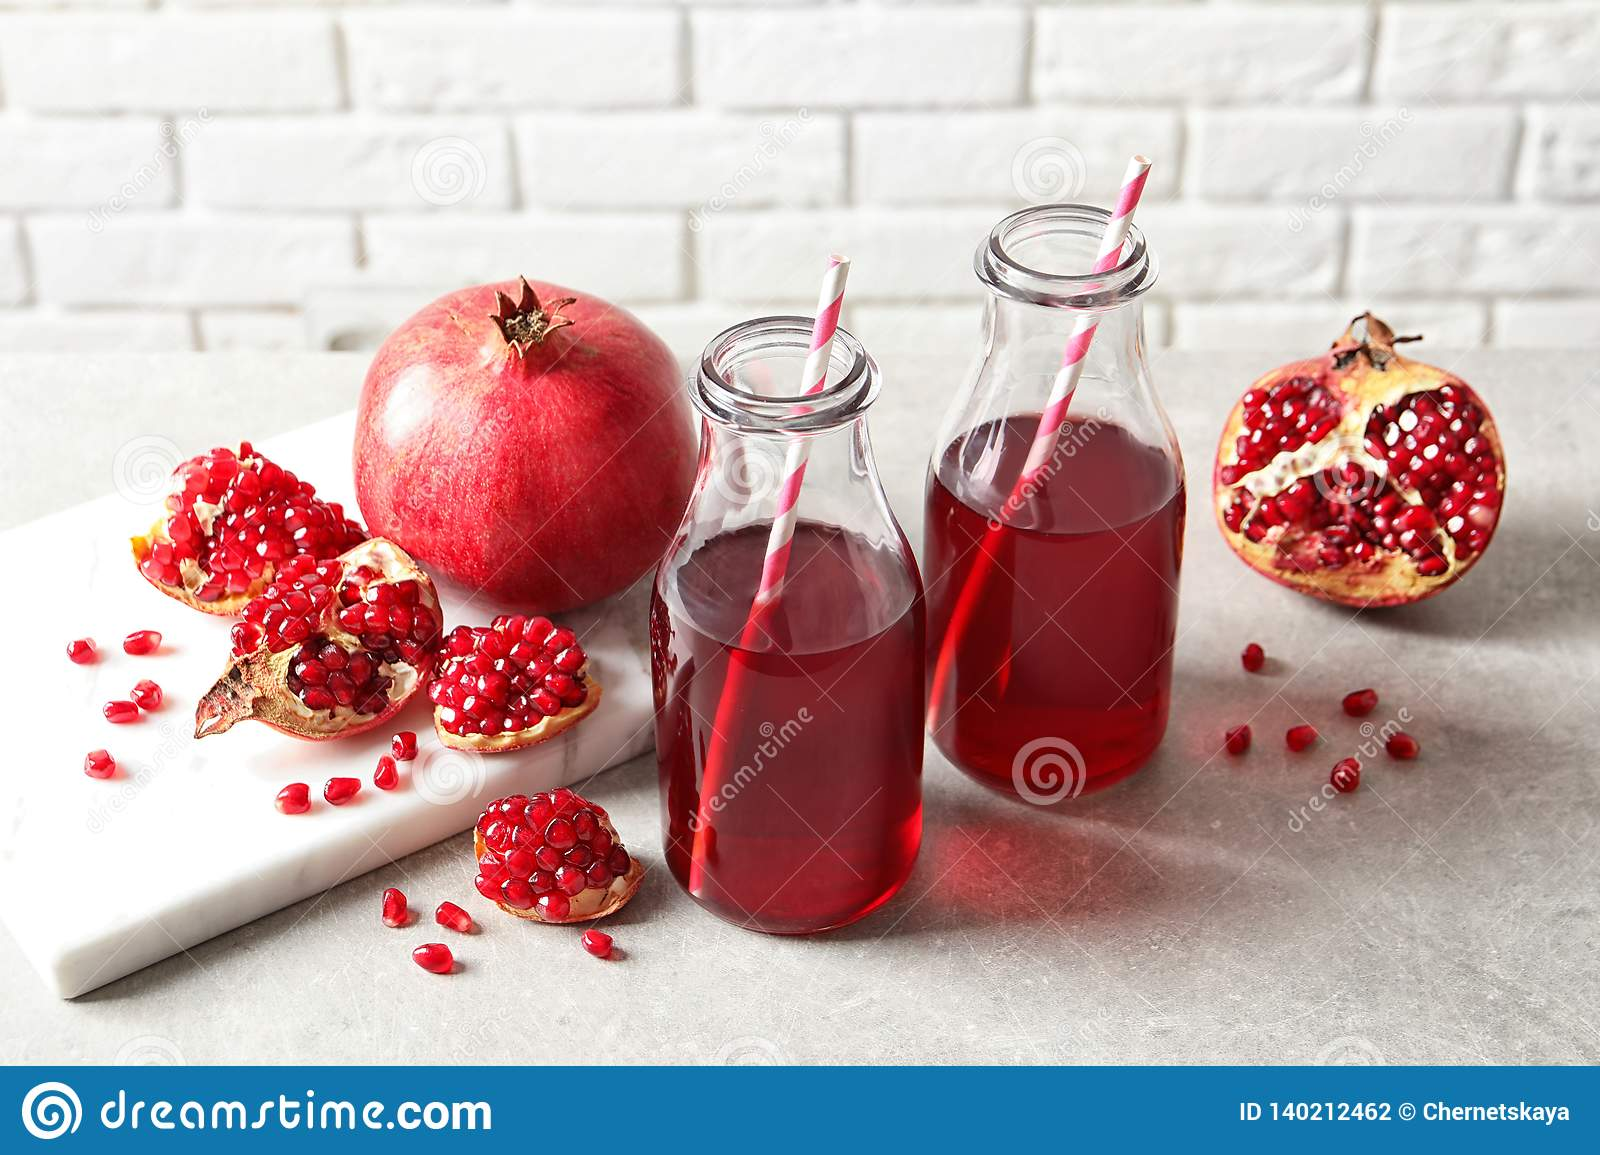 Composition with bottles of fresh pomegranate juice